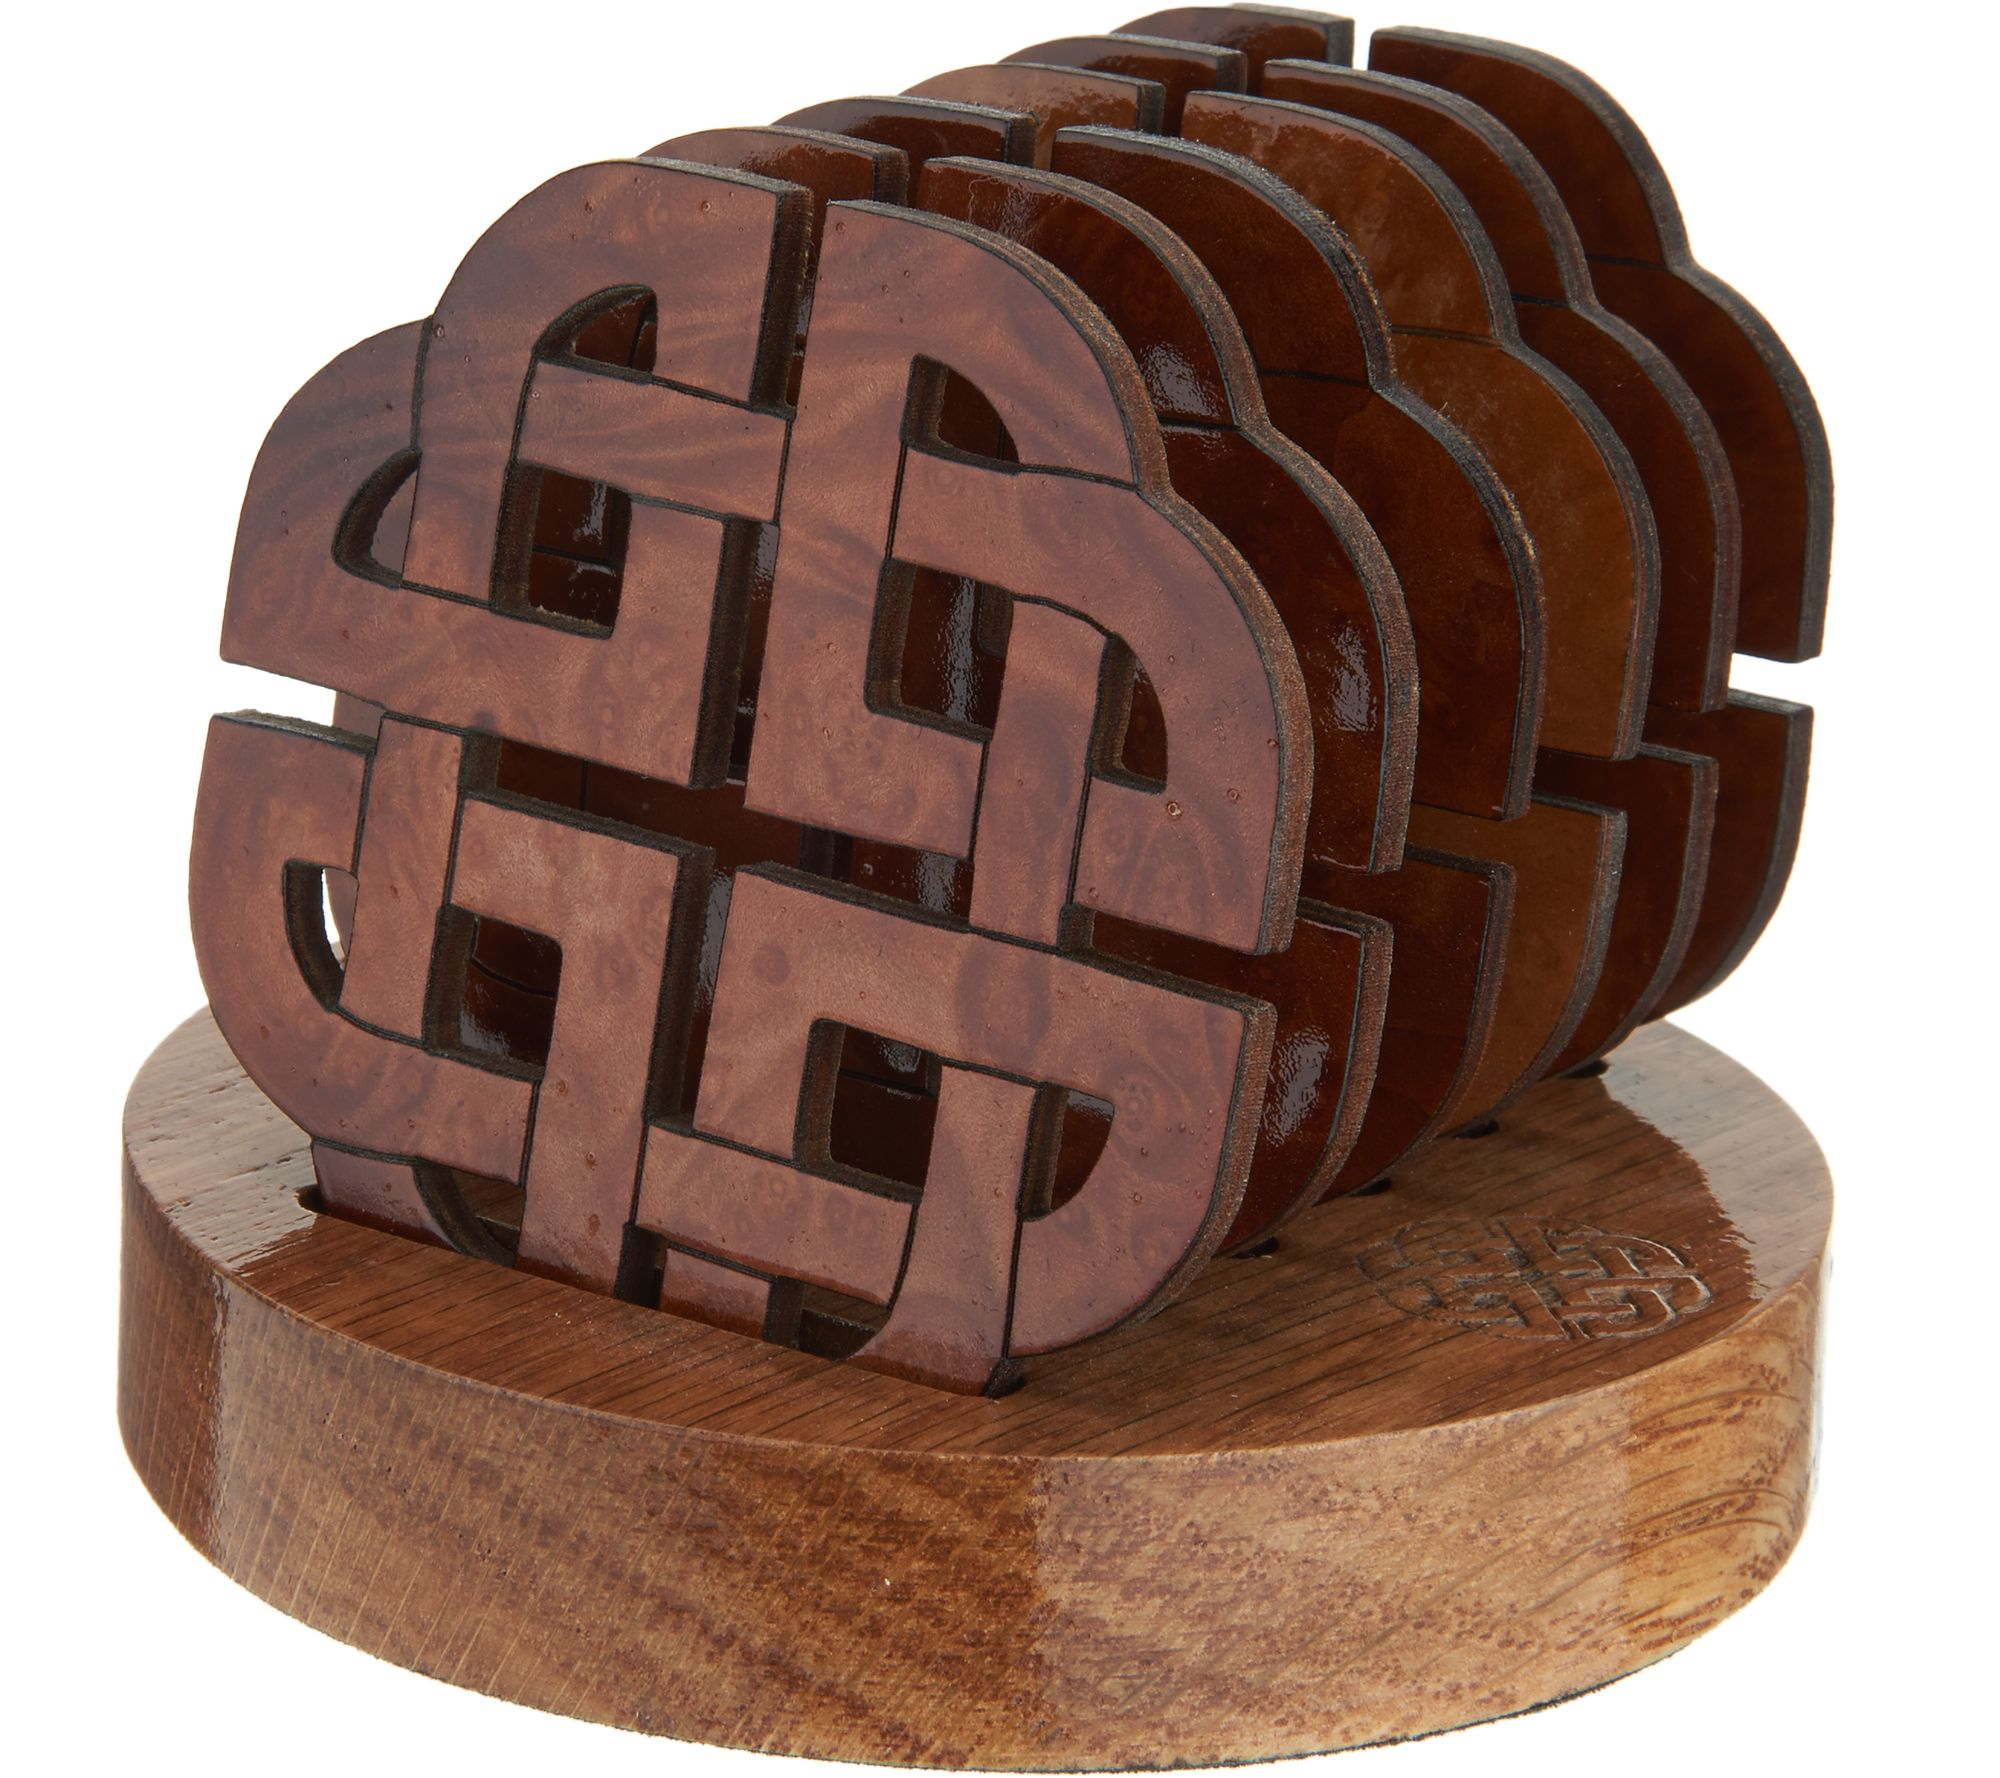 Wood Coaster Holder Monson Set Of 6 Wooden Coasters With Holder Page 1 Qvc